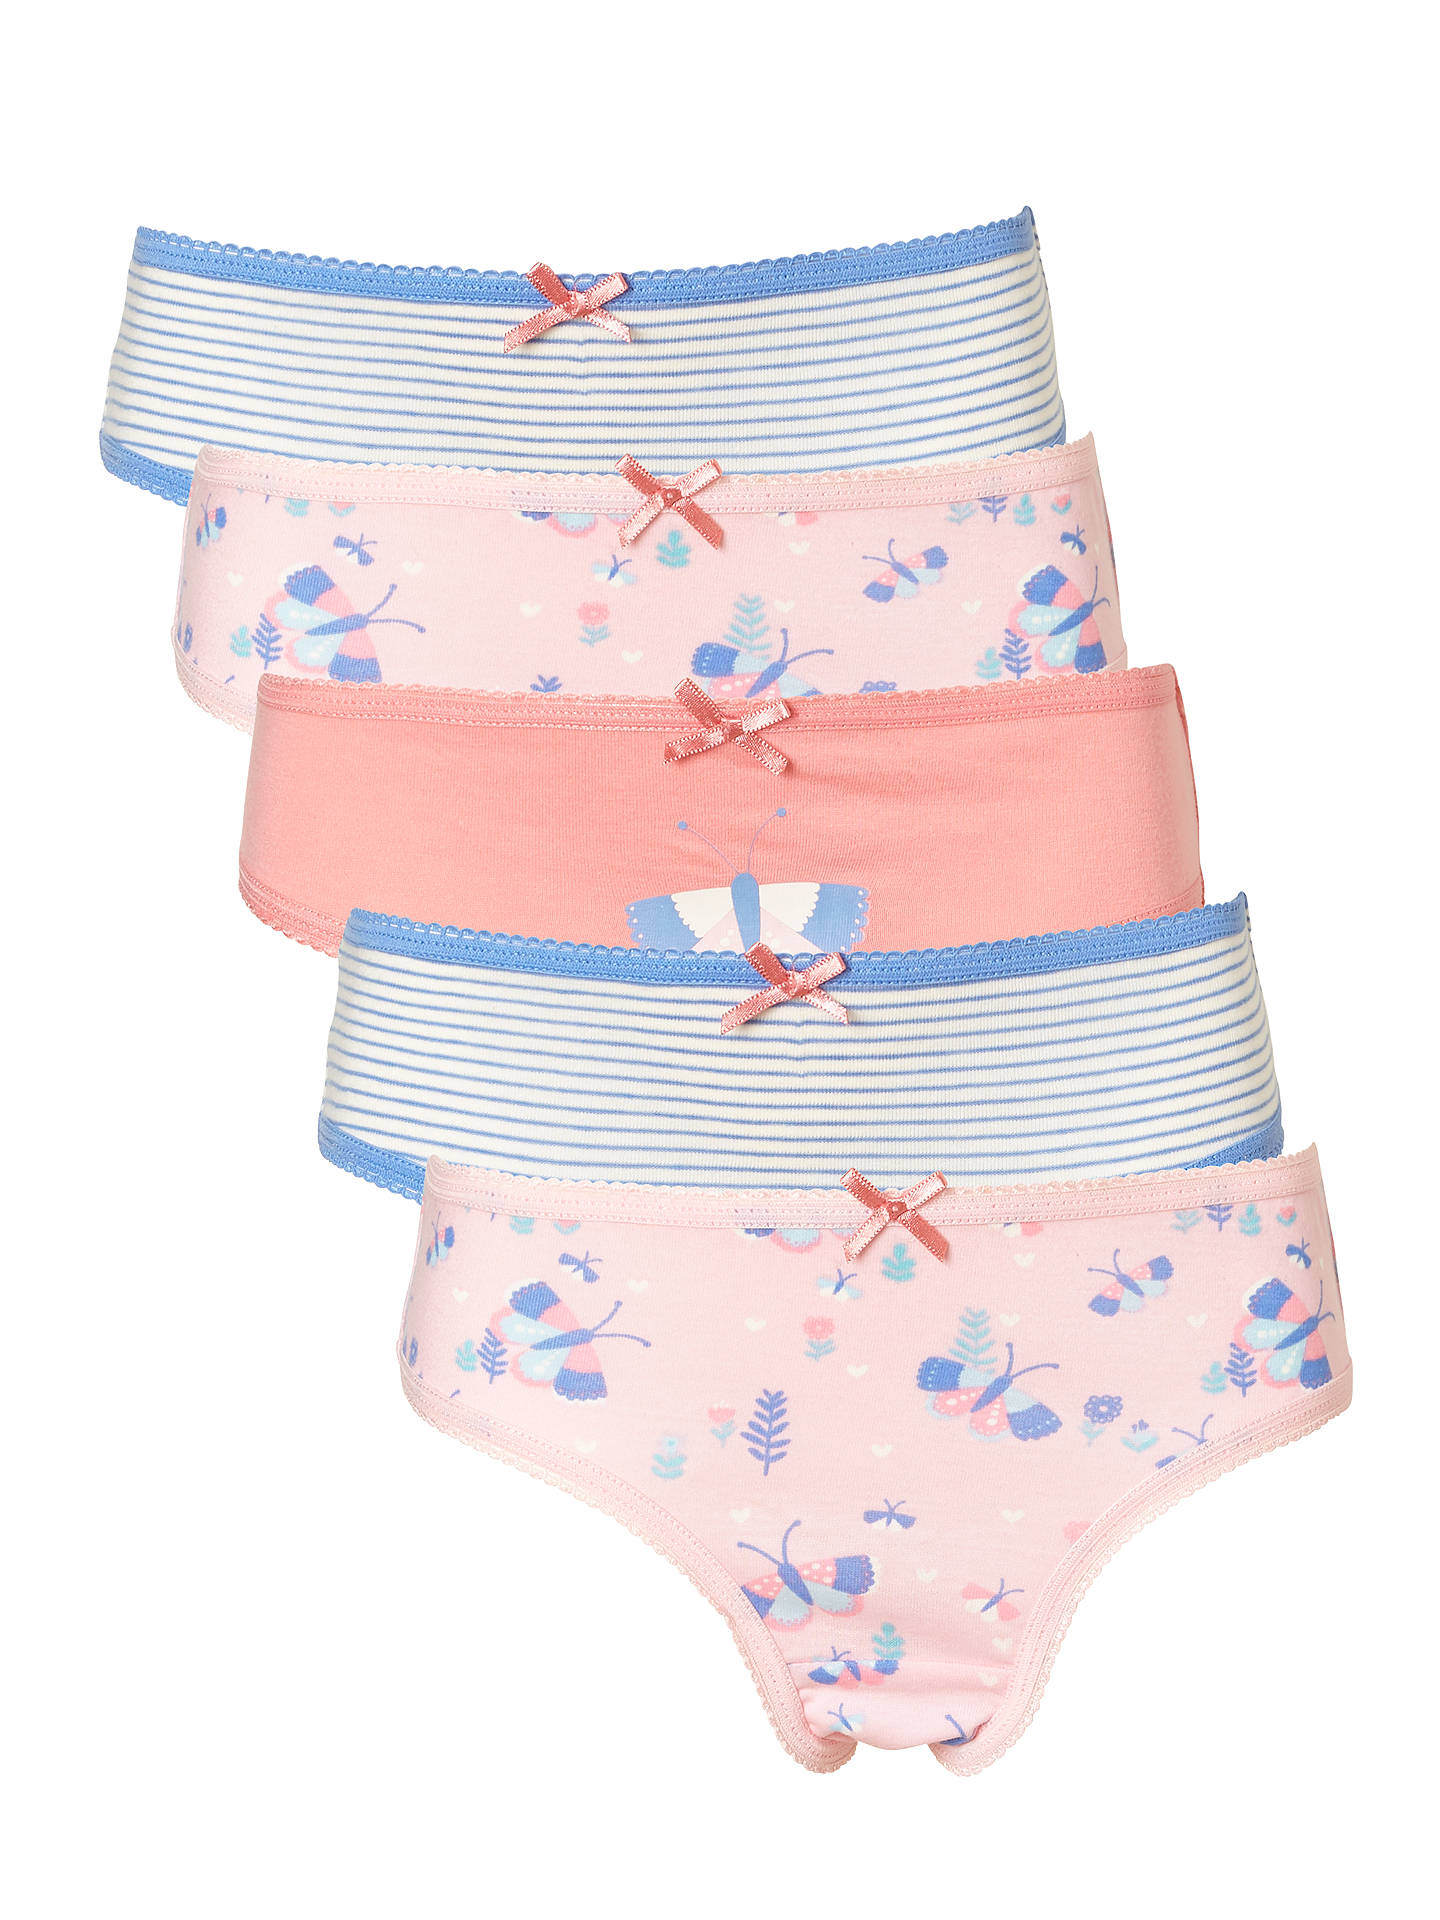 7a460357227a Buy John Lewis & Partners Girls' Butterfly Print Briefs, Pack of 5, Pink ...